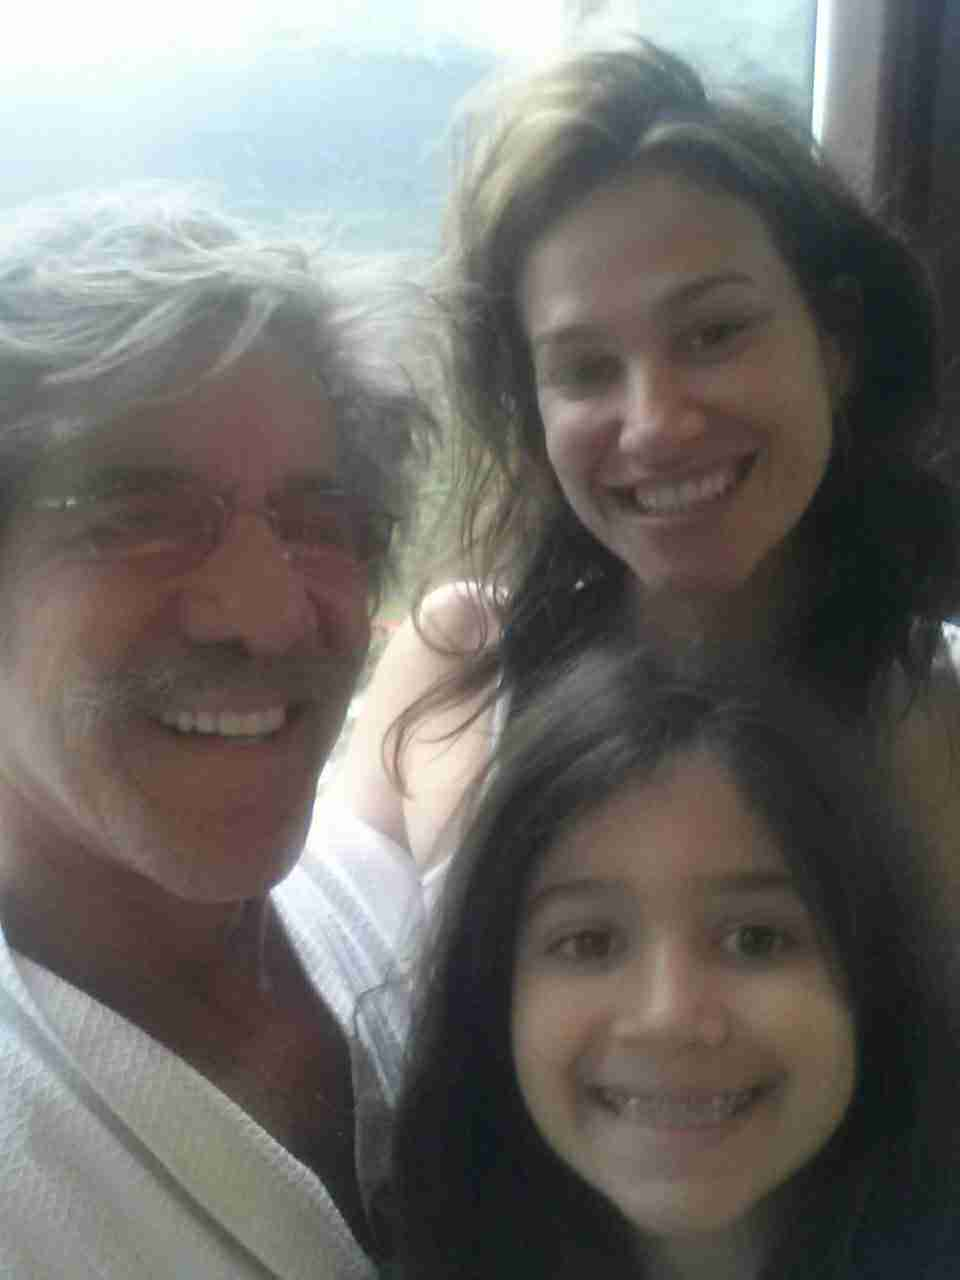 Geraldo, wife Erica and youngest daughter Sol during a trip to Alaska.